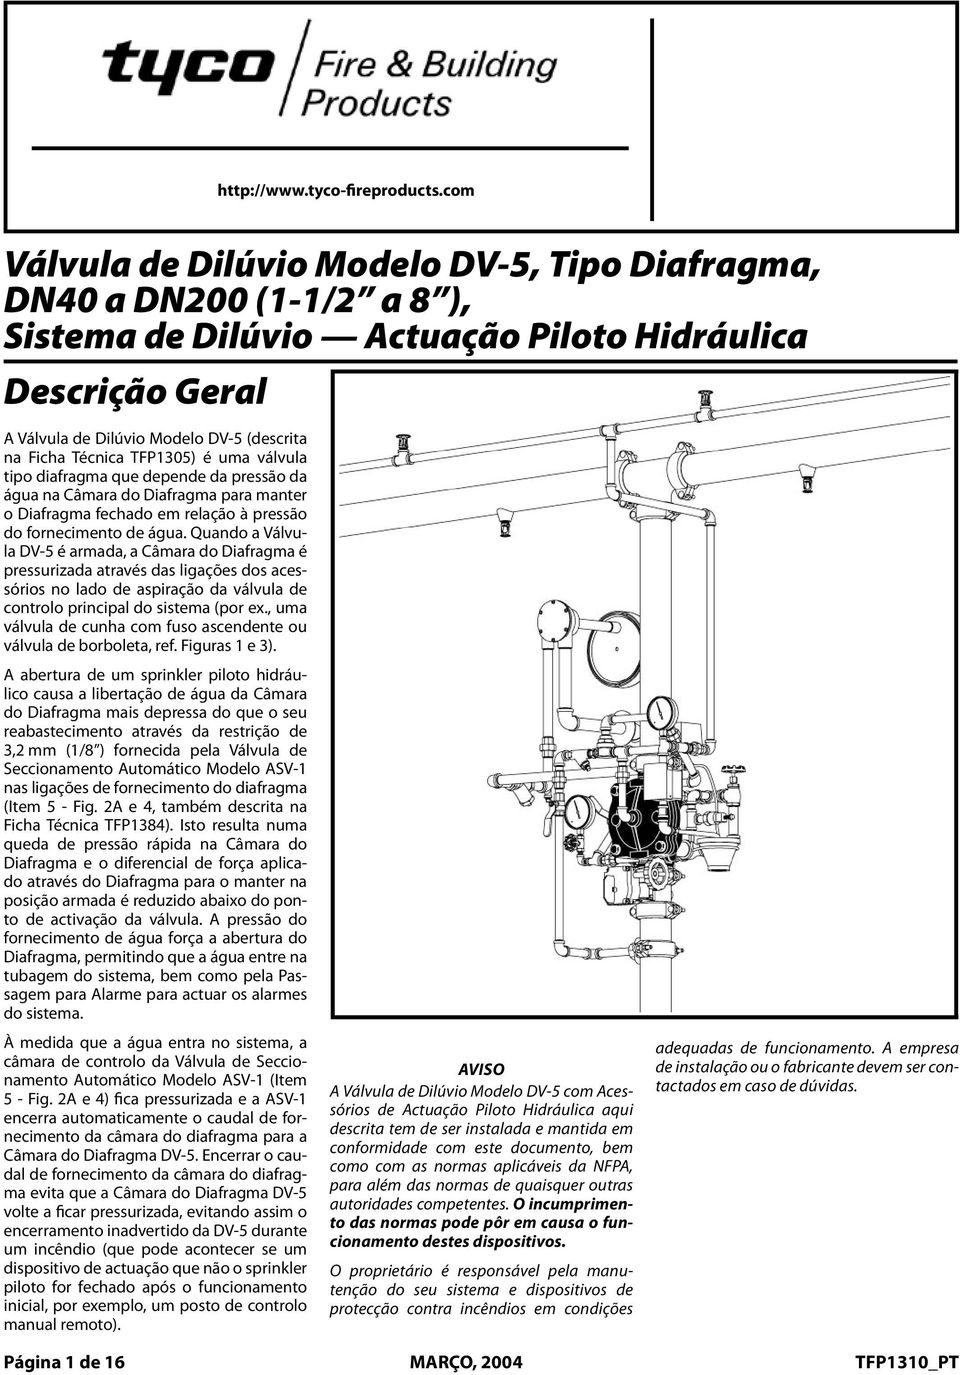 Técnica DV-5 TFP5) Deluge é Valve uma válvula (scribed tipo diafragma in Technical que pen Data da pressão Sheet da TFP5) água na Câmara is a do diaphragm Diafragma style para valve manter that o